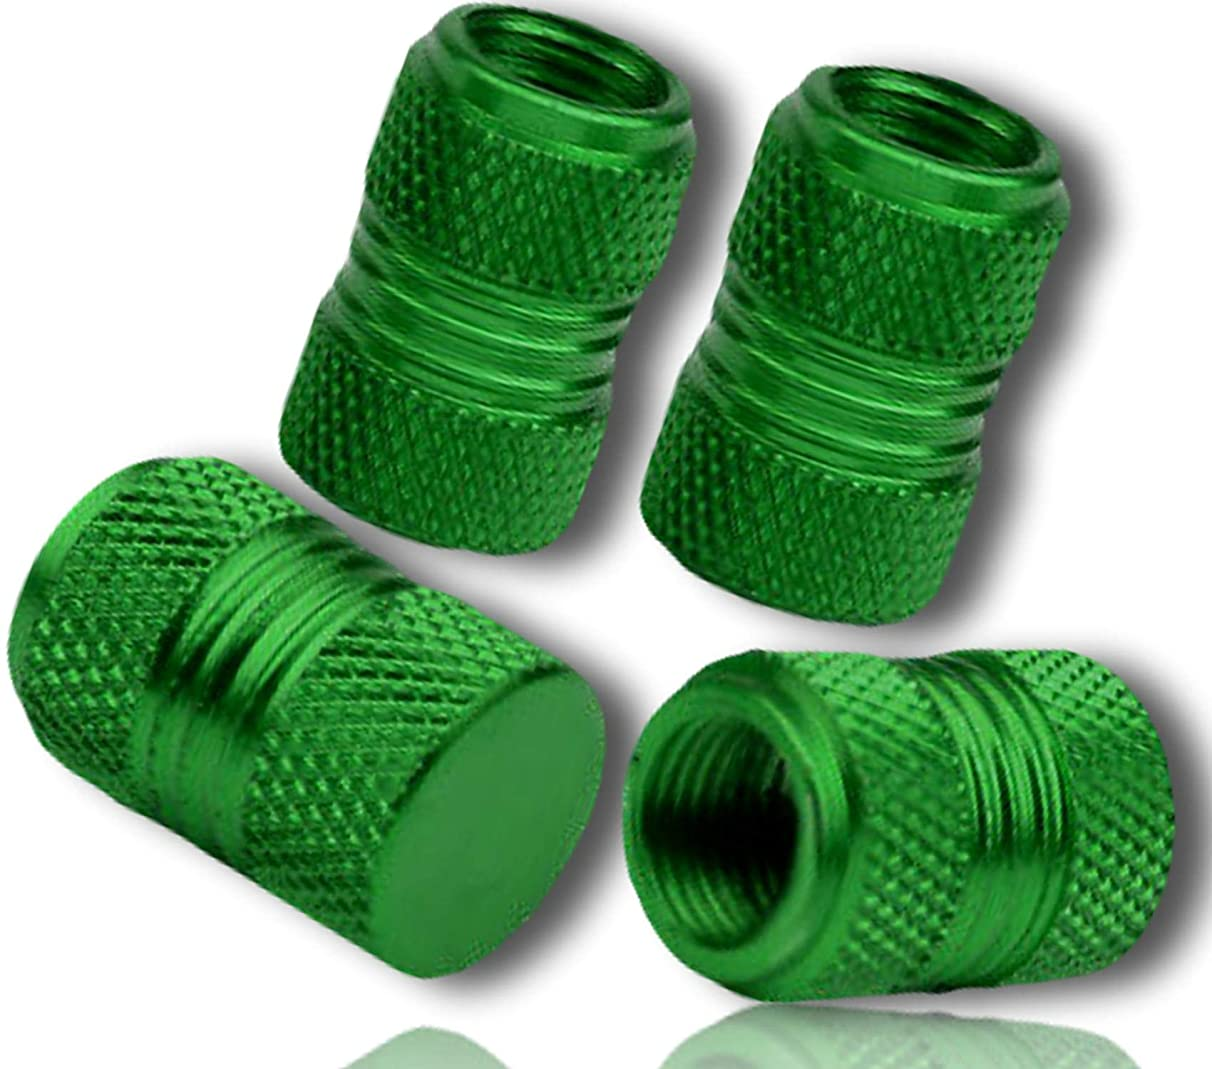 (4 Count) Custom Tire Wheel Rim Valve Stem Dust Cap Cover Seal w/ Easy Grip Texture, Made of Rust Proof Aluminum Metal w/ Smooth Anodized Knurled Diamond Etched Shiny Reflective {Green} + Certificate